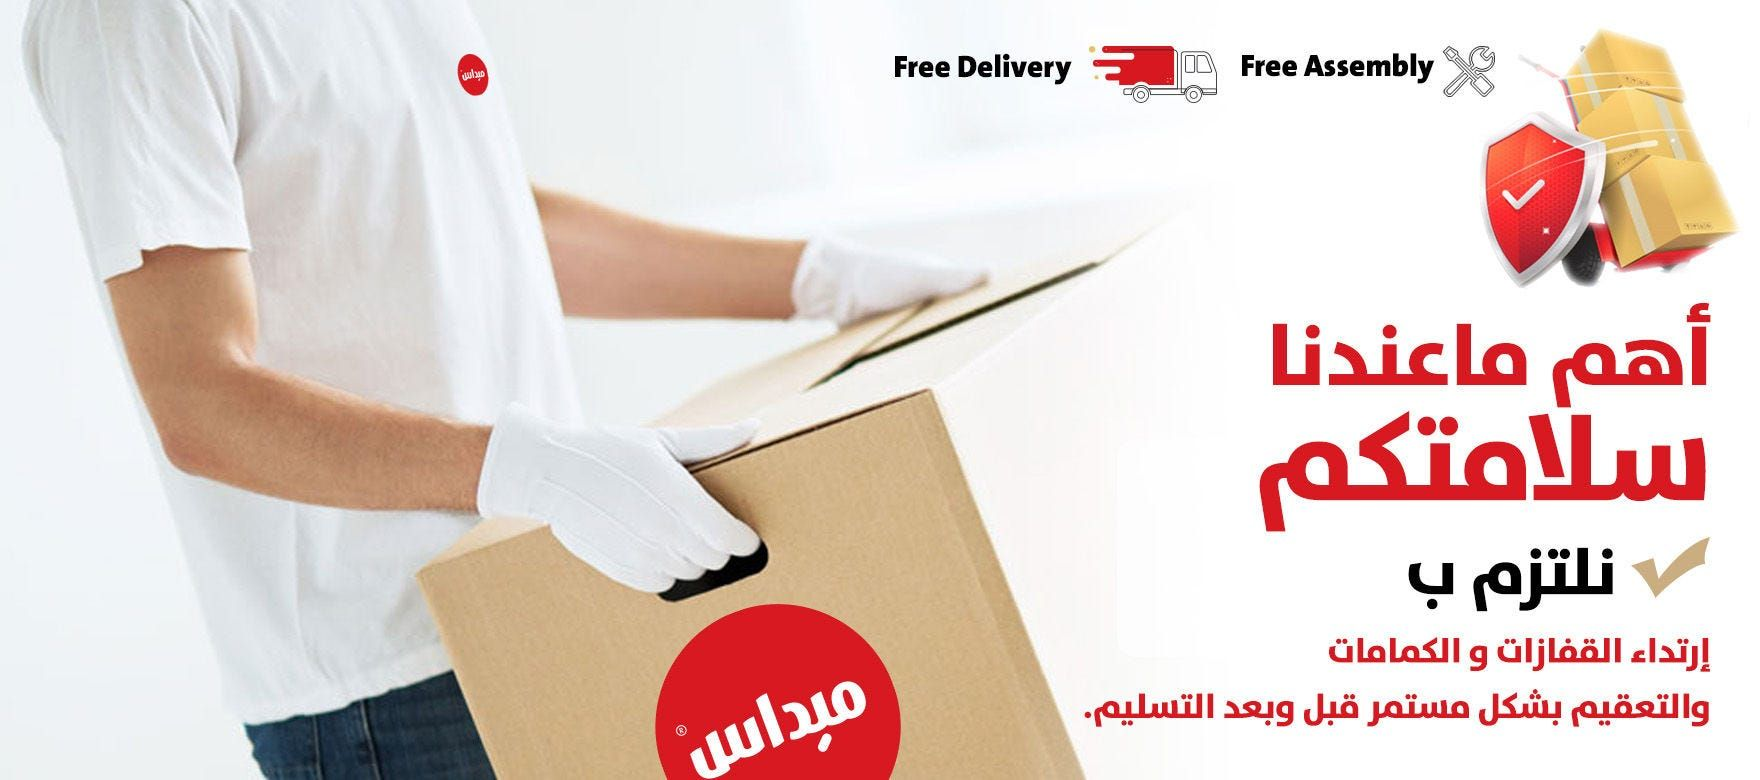 Qatar Delivery Rules Arb